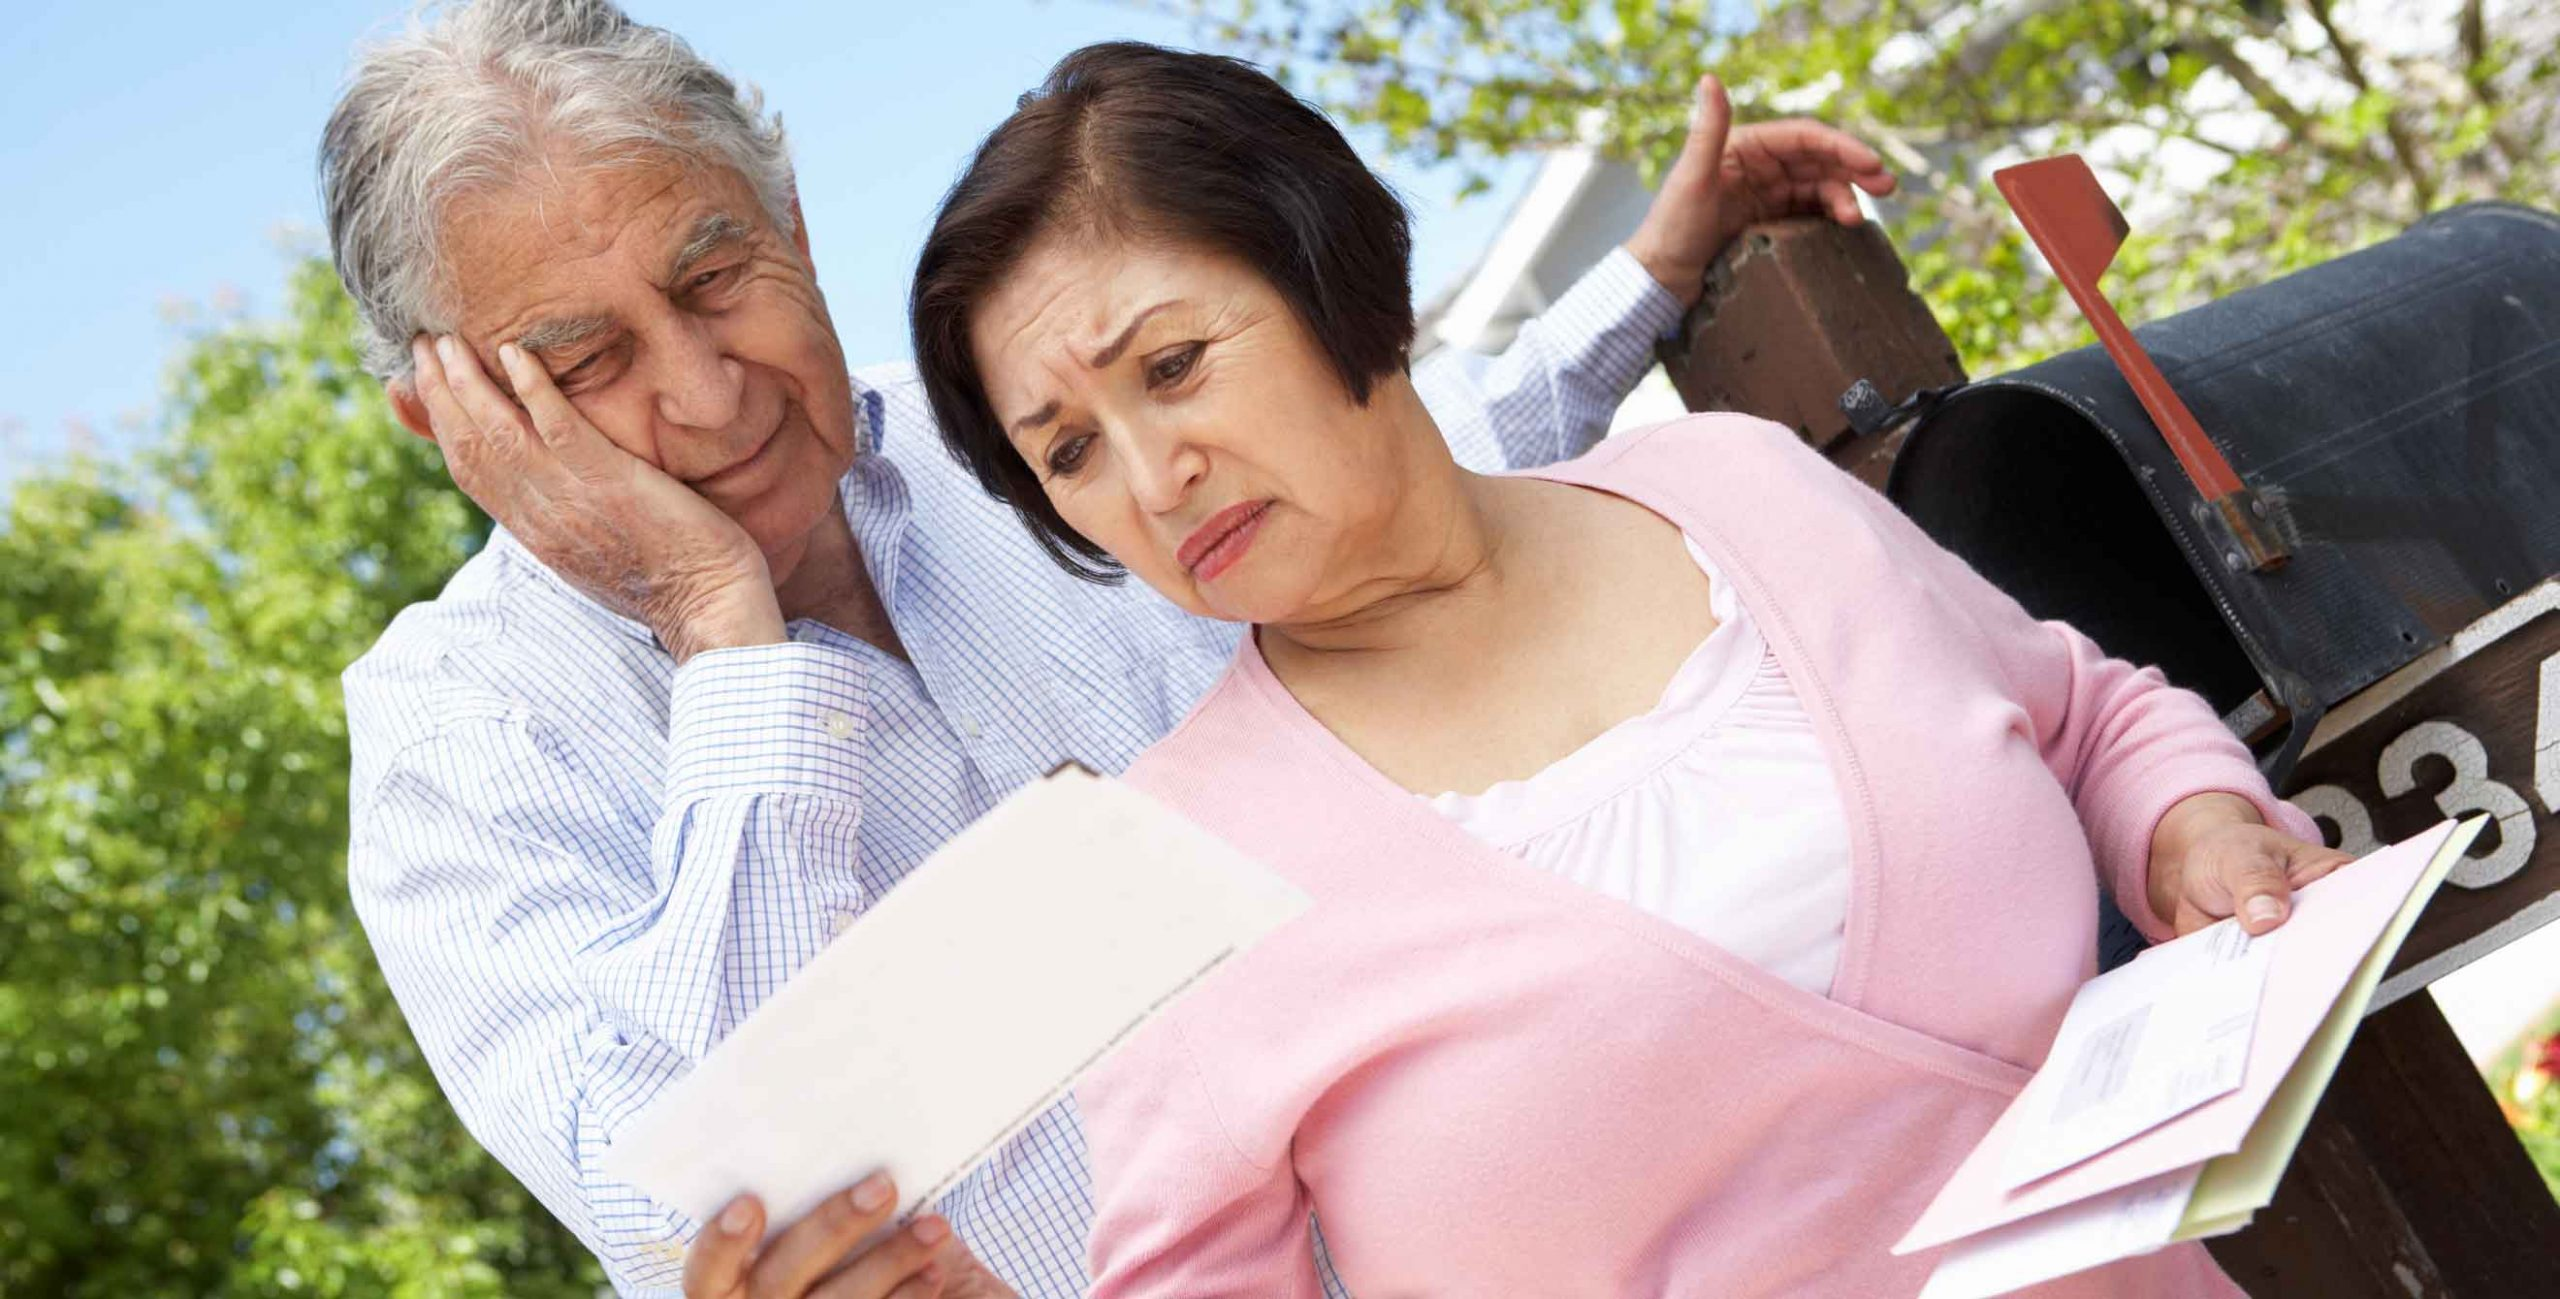 Do you feel you're being bombarded by Medicare marketing?